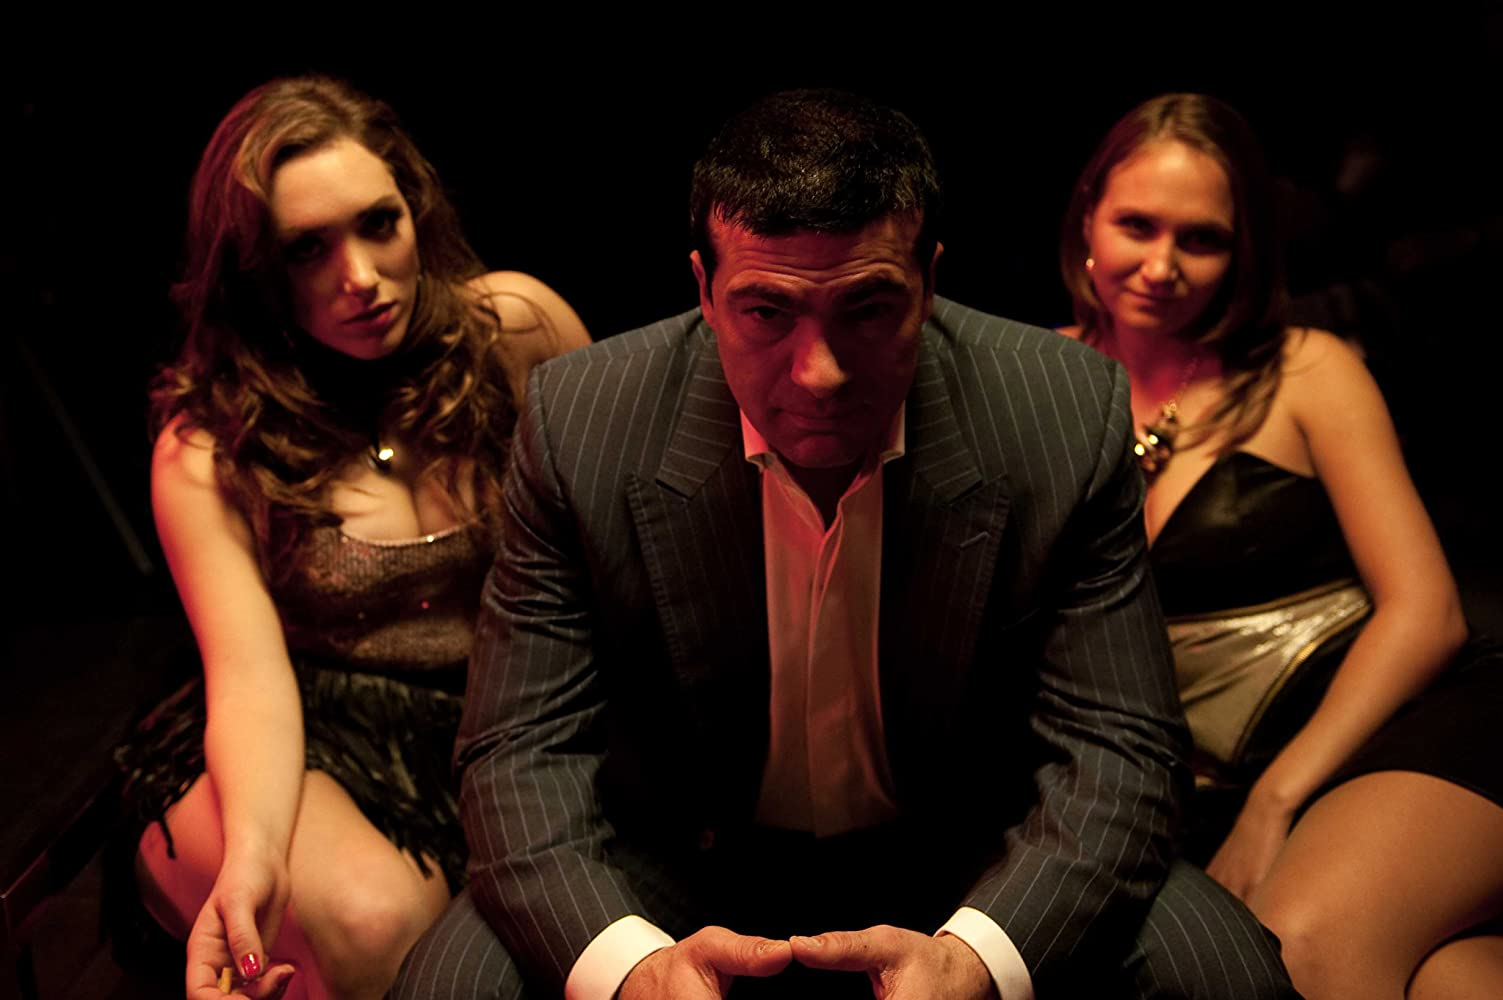 Tamer Hassan in Bonded by Blood (2010)